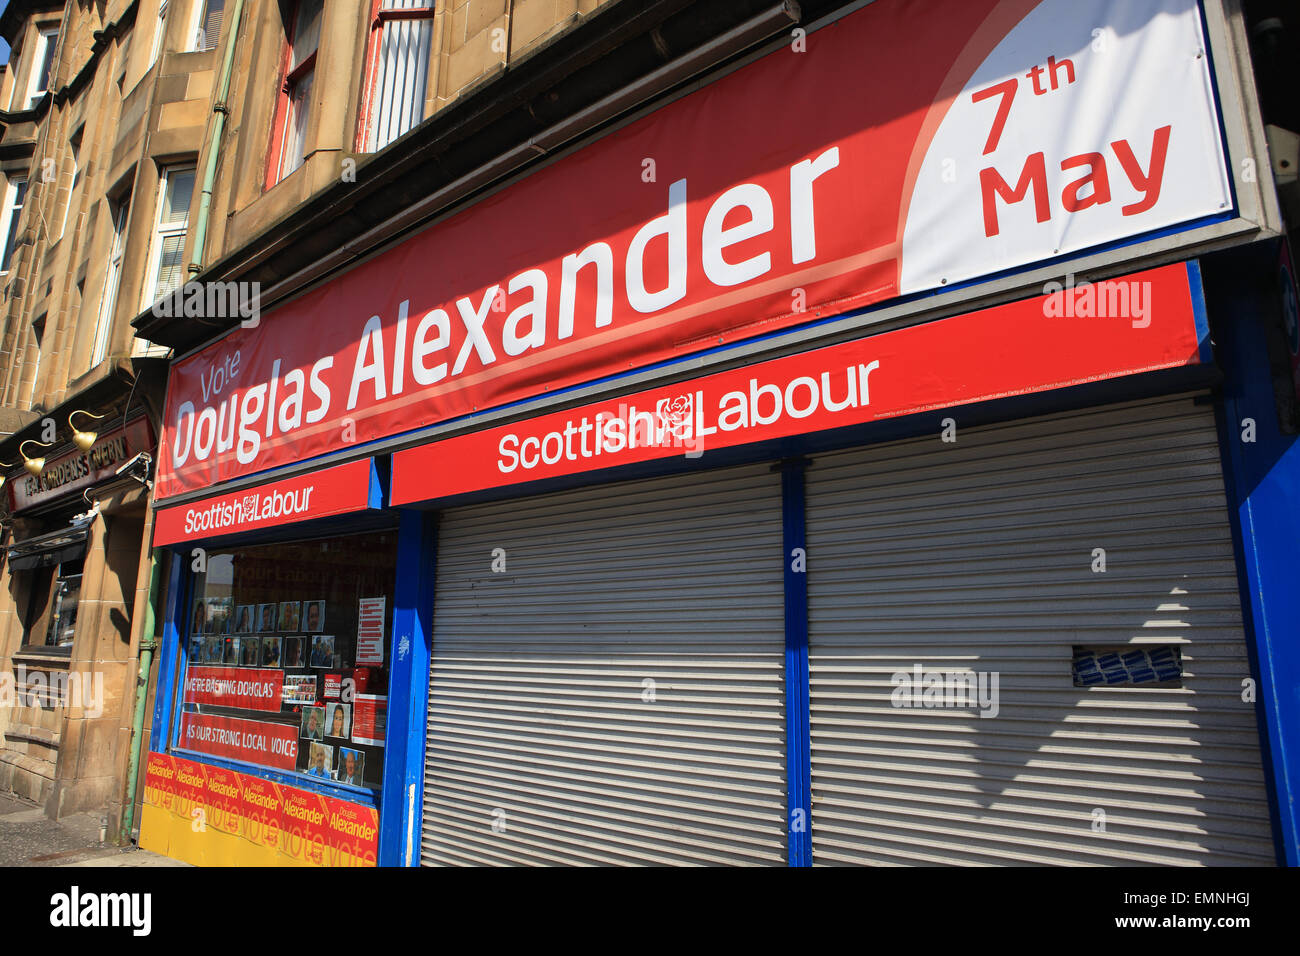 Douglas Alexander, Labour Party politician, campaign office in Paisley being used prior to the General Election - Stock Image